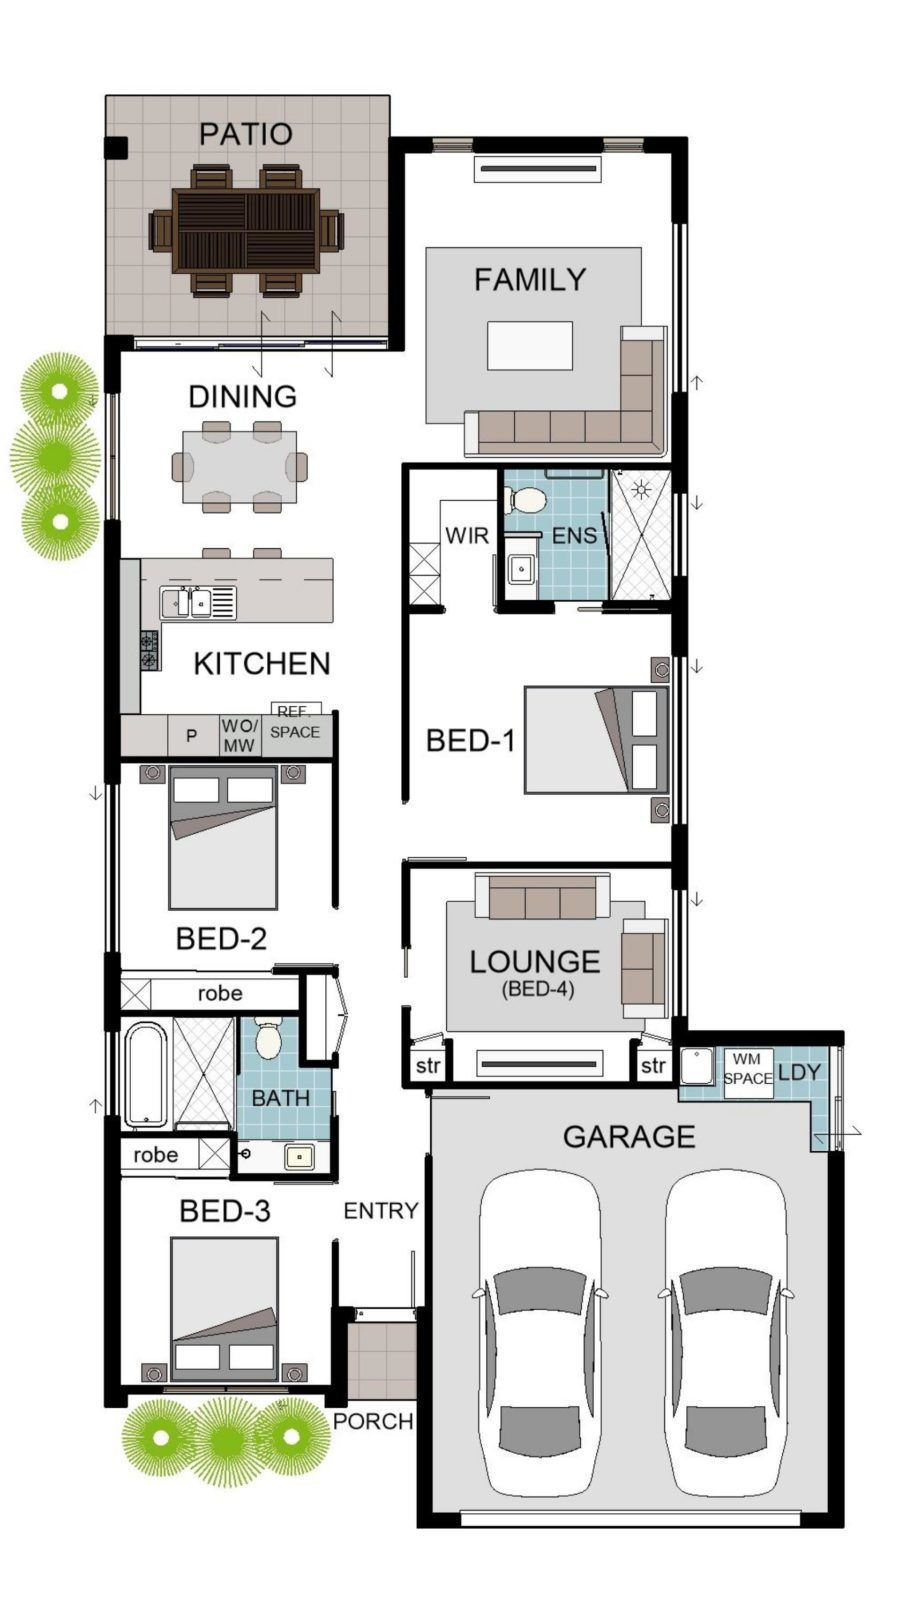 Pin By Davi Buba On Bungalow House Design Australian House Plans Bungalow House Design House Floor Plans